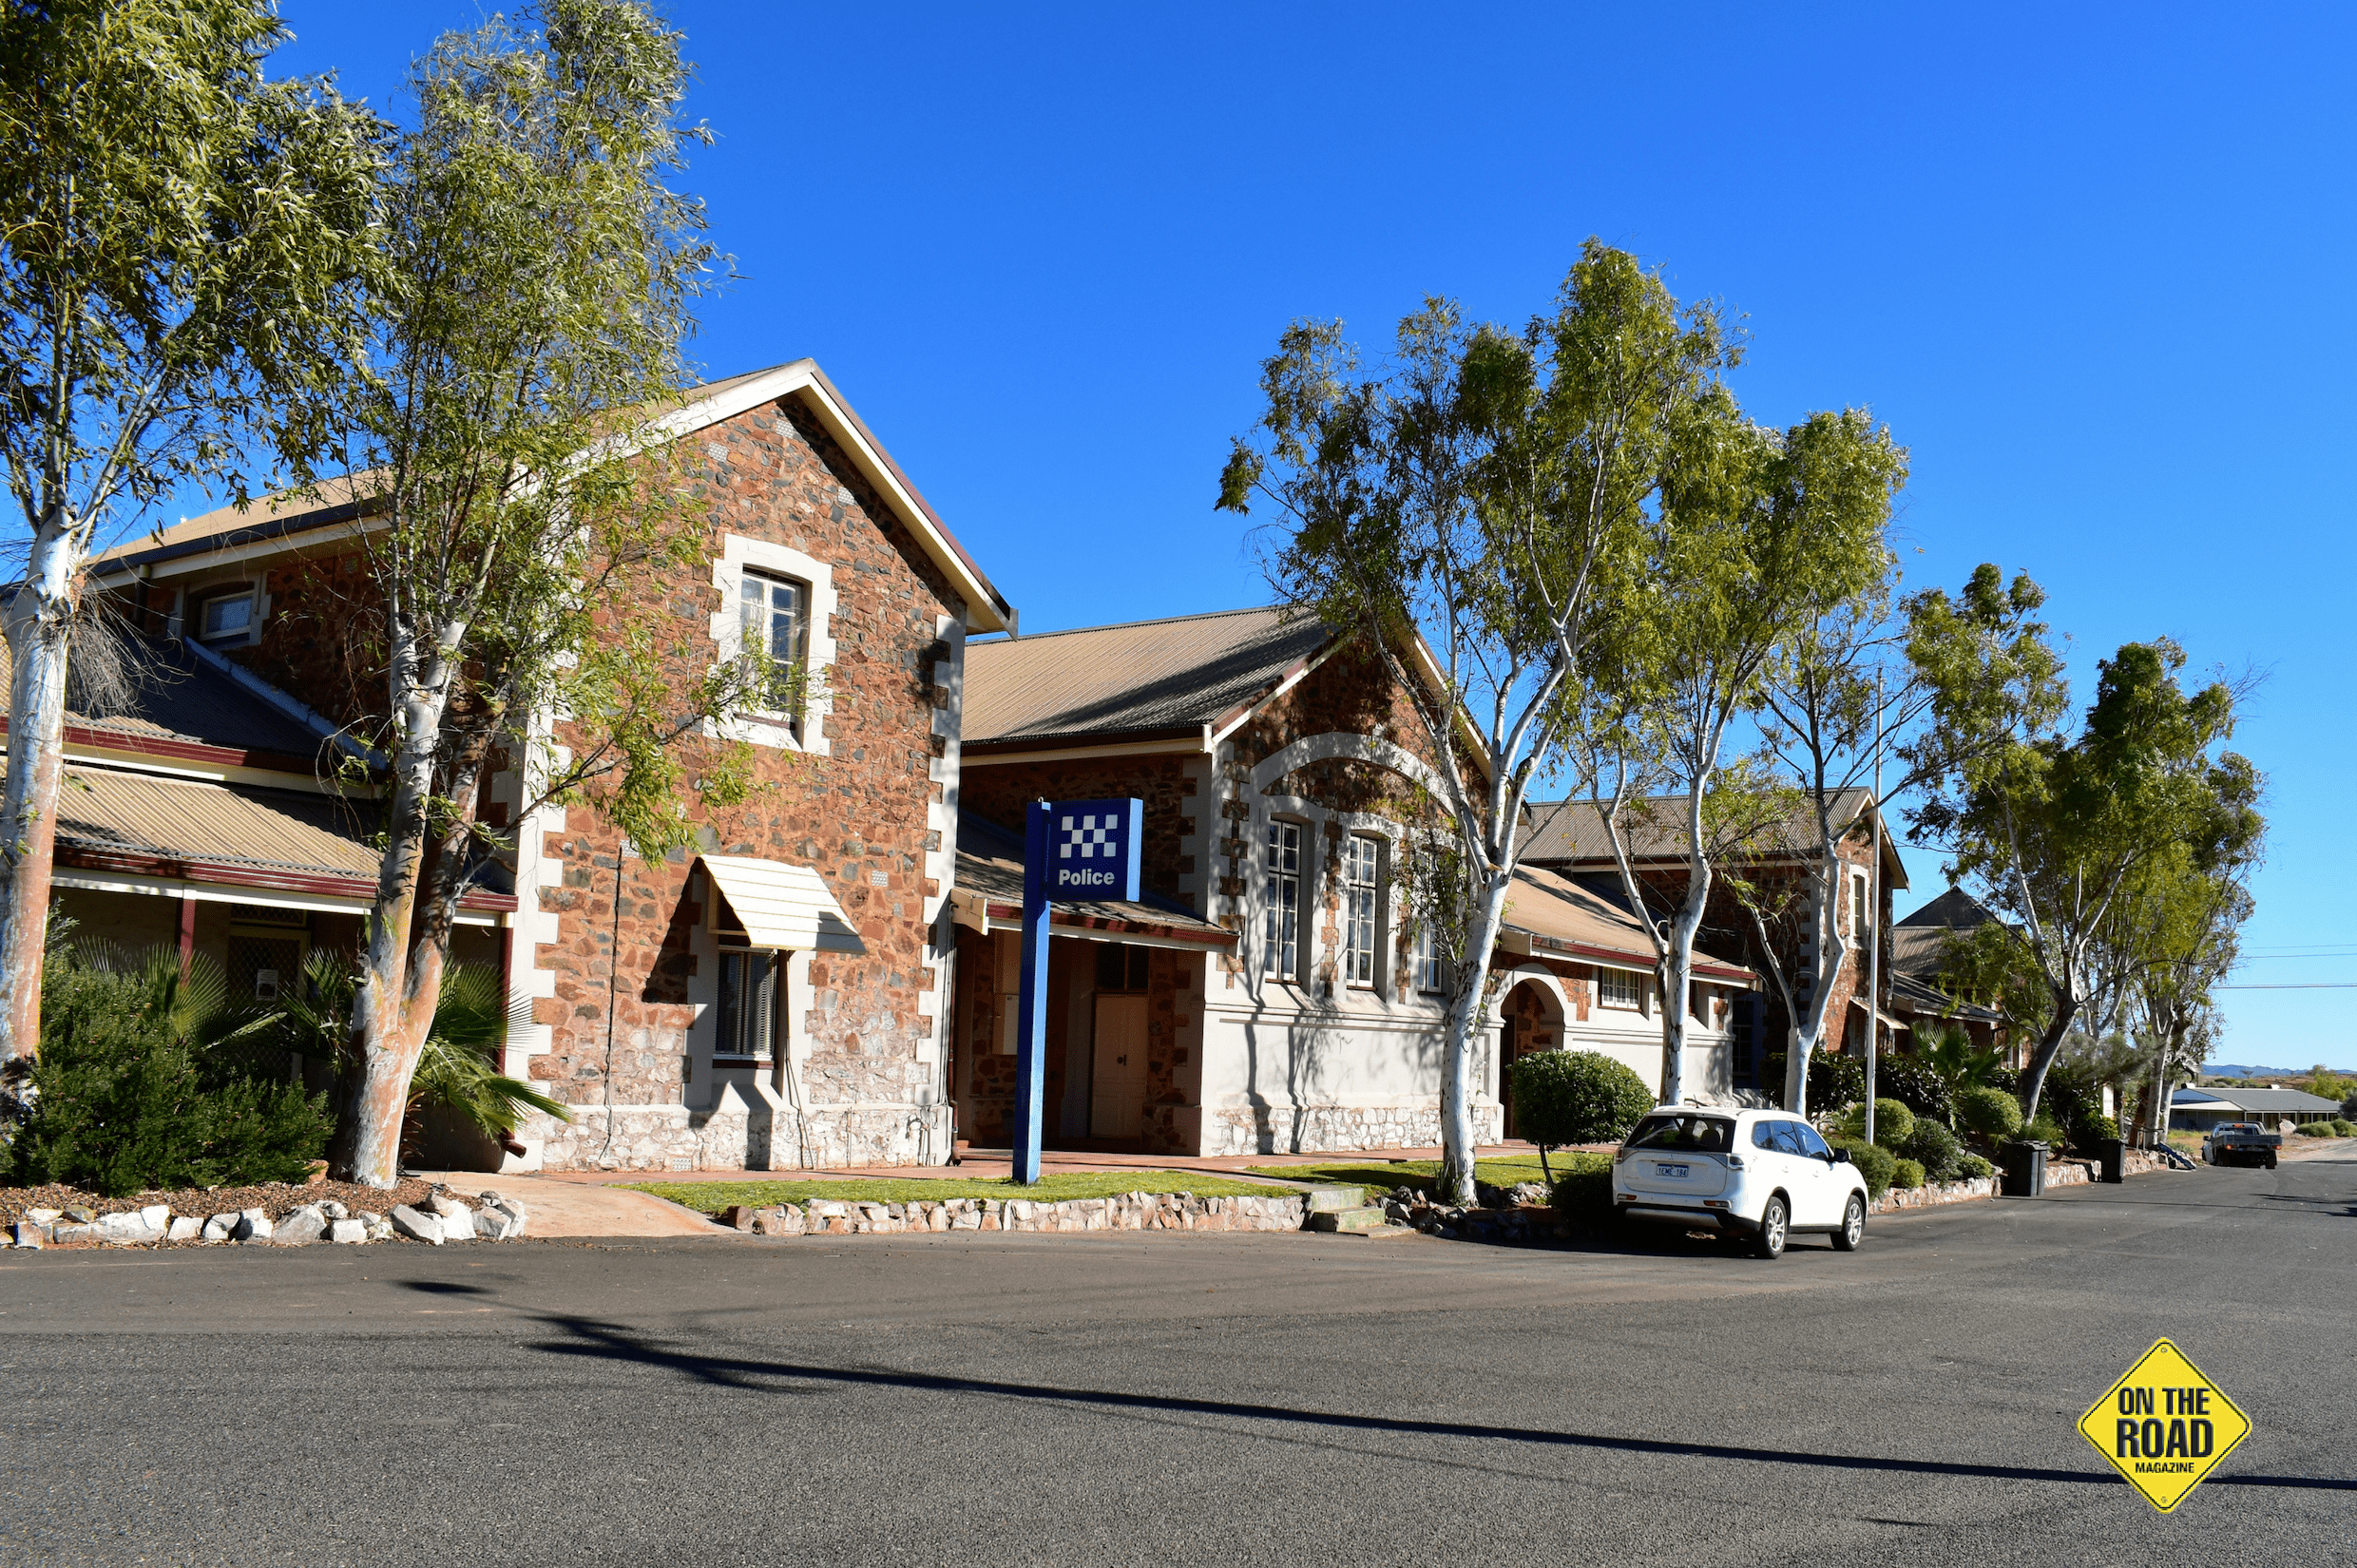 Marble Bar's oldest operational Police Station in Western Australia